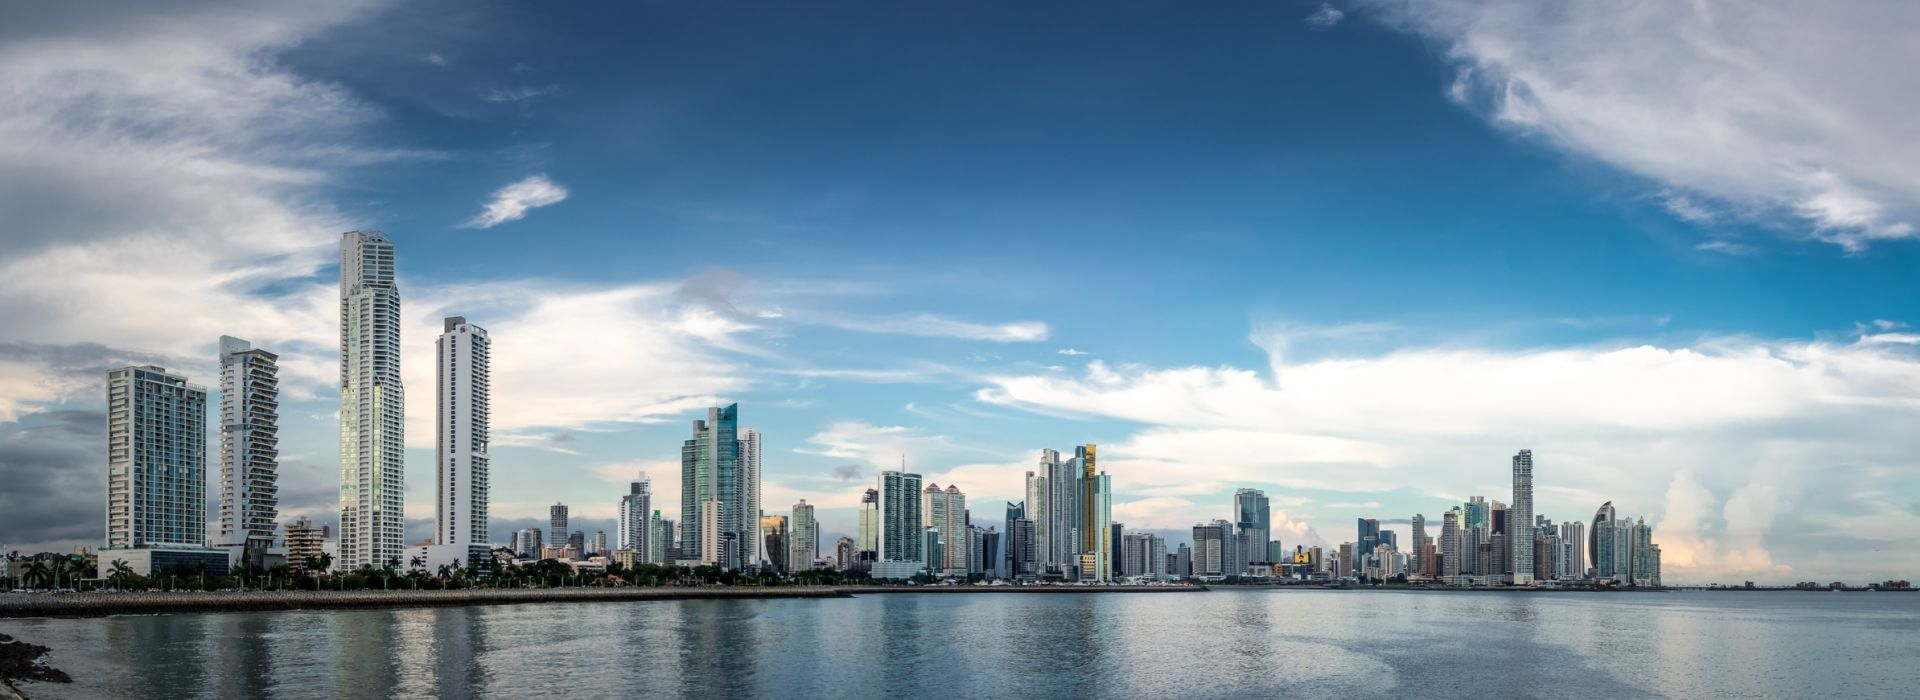 Bicycle tours in Panama City